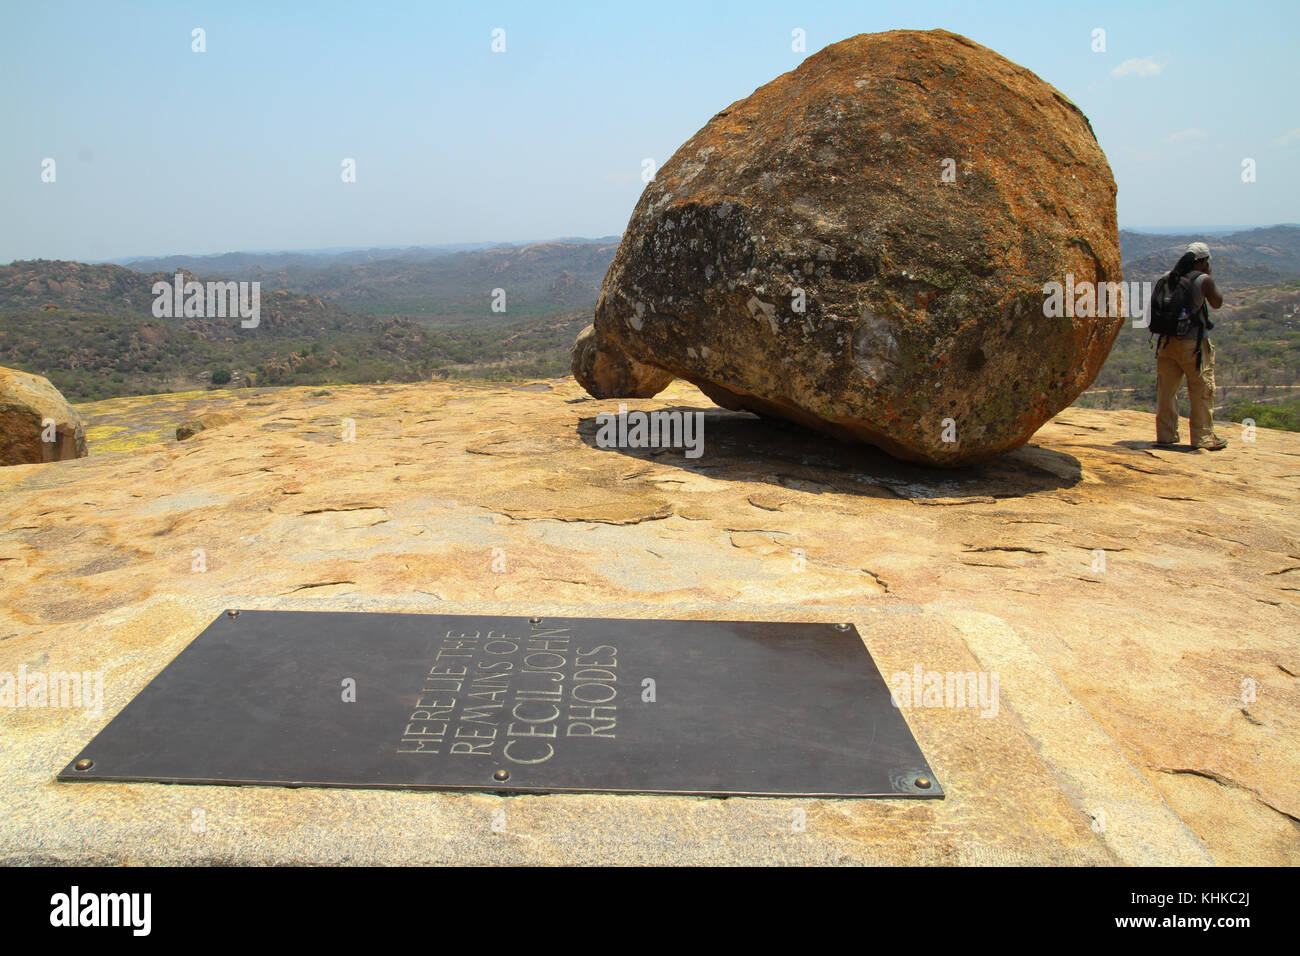 MATOPOS, ZIMBABWE -  17 October 2011. A tourist stands by a rock next to Cecil Rhodes grave in the Matopo National - Stock Image